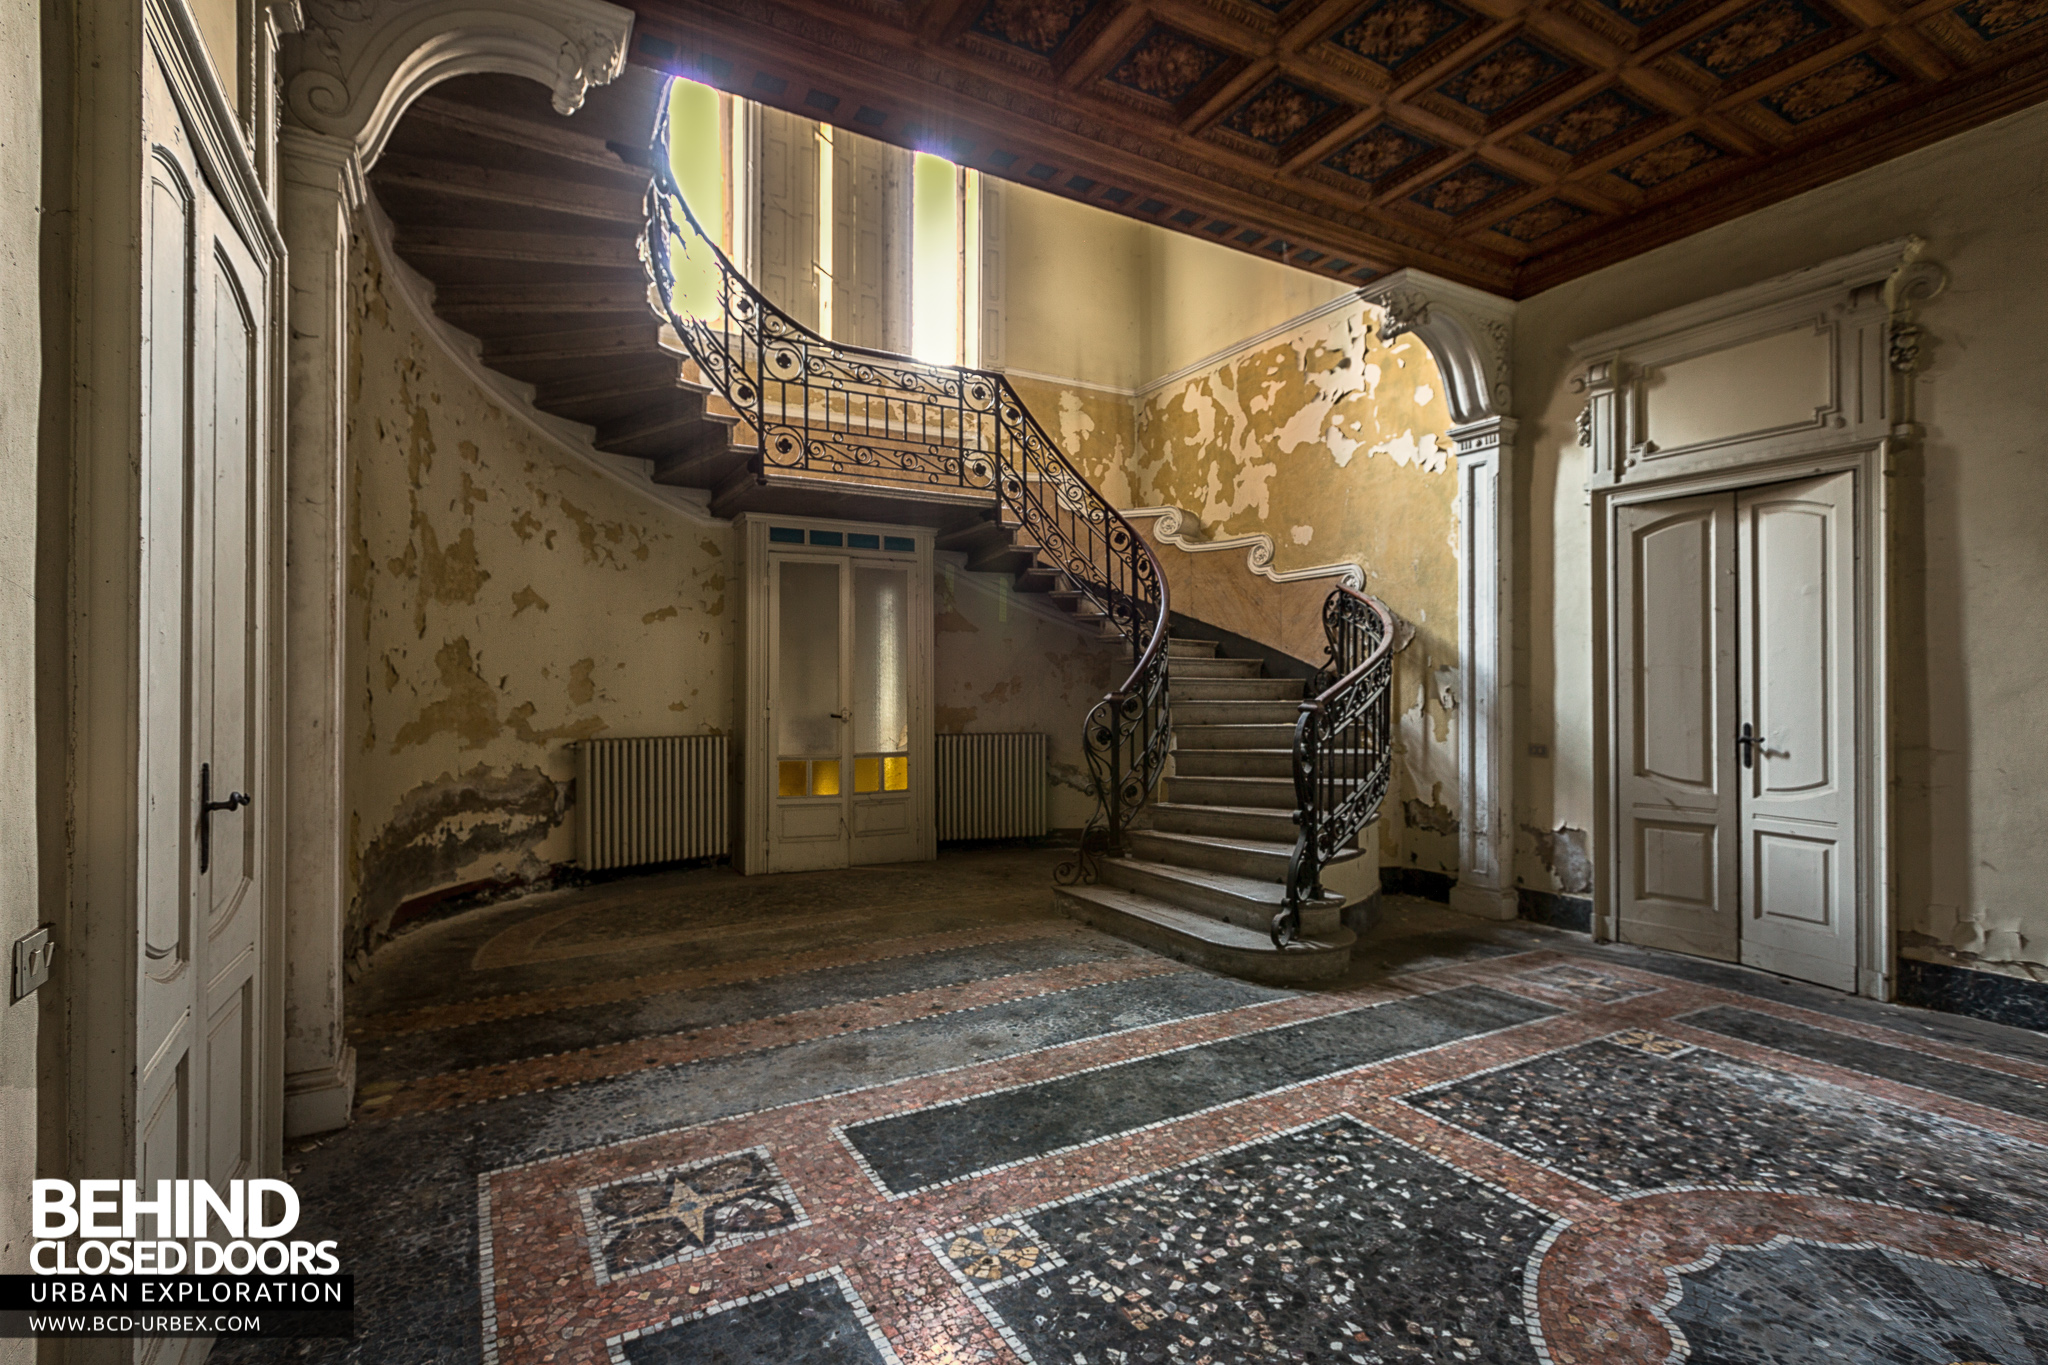 Villa Margherita Abandoned House Italy 187 Urbex Behind